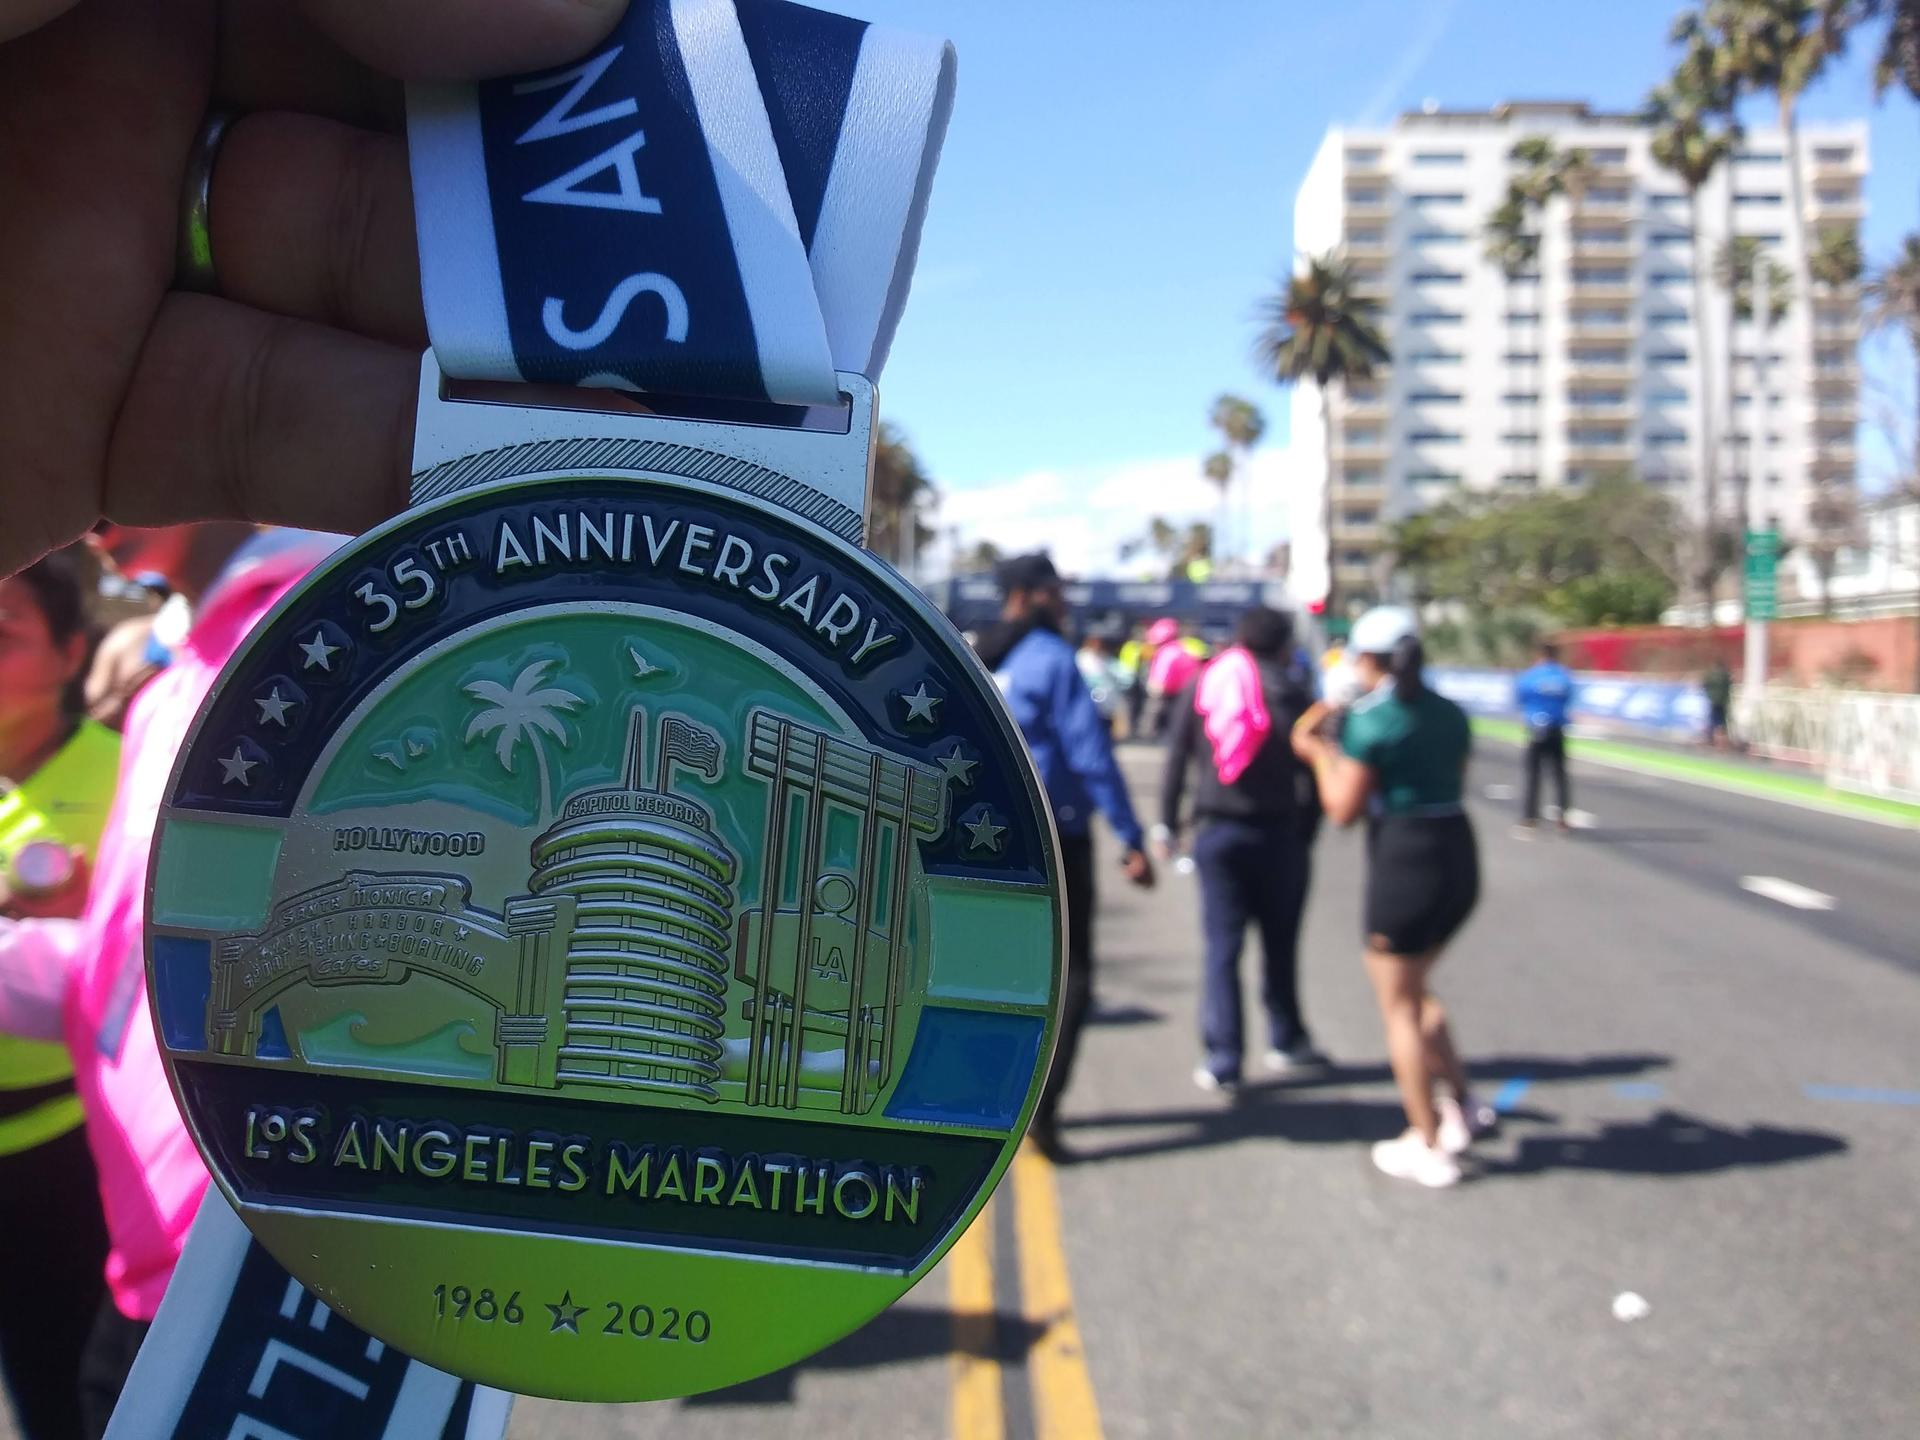 'If I can run a marathon, I can do anything!'